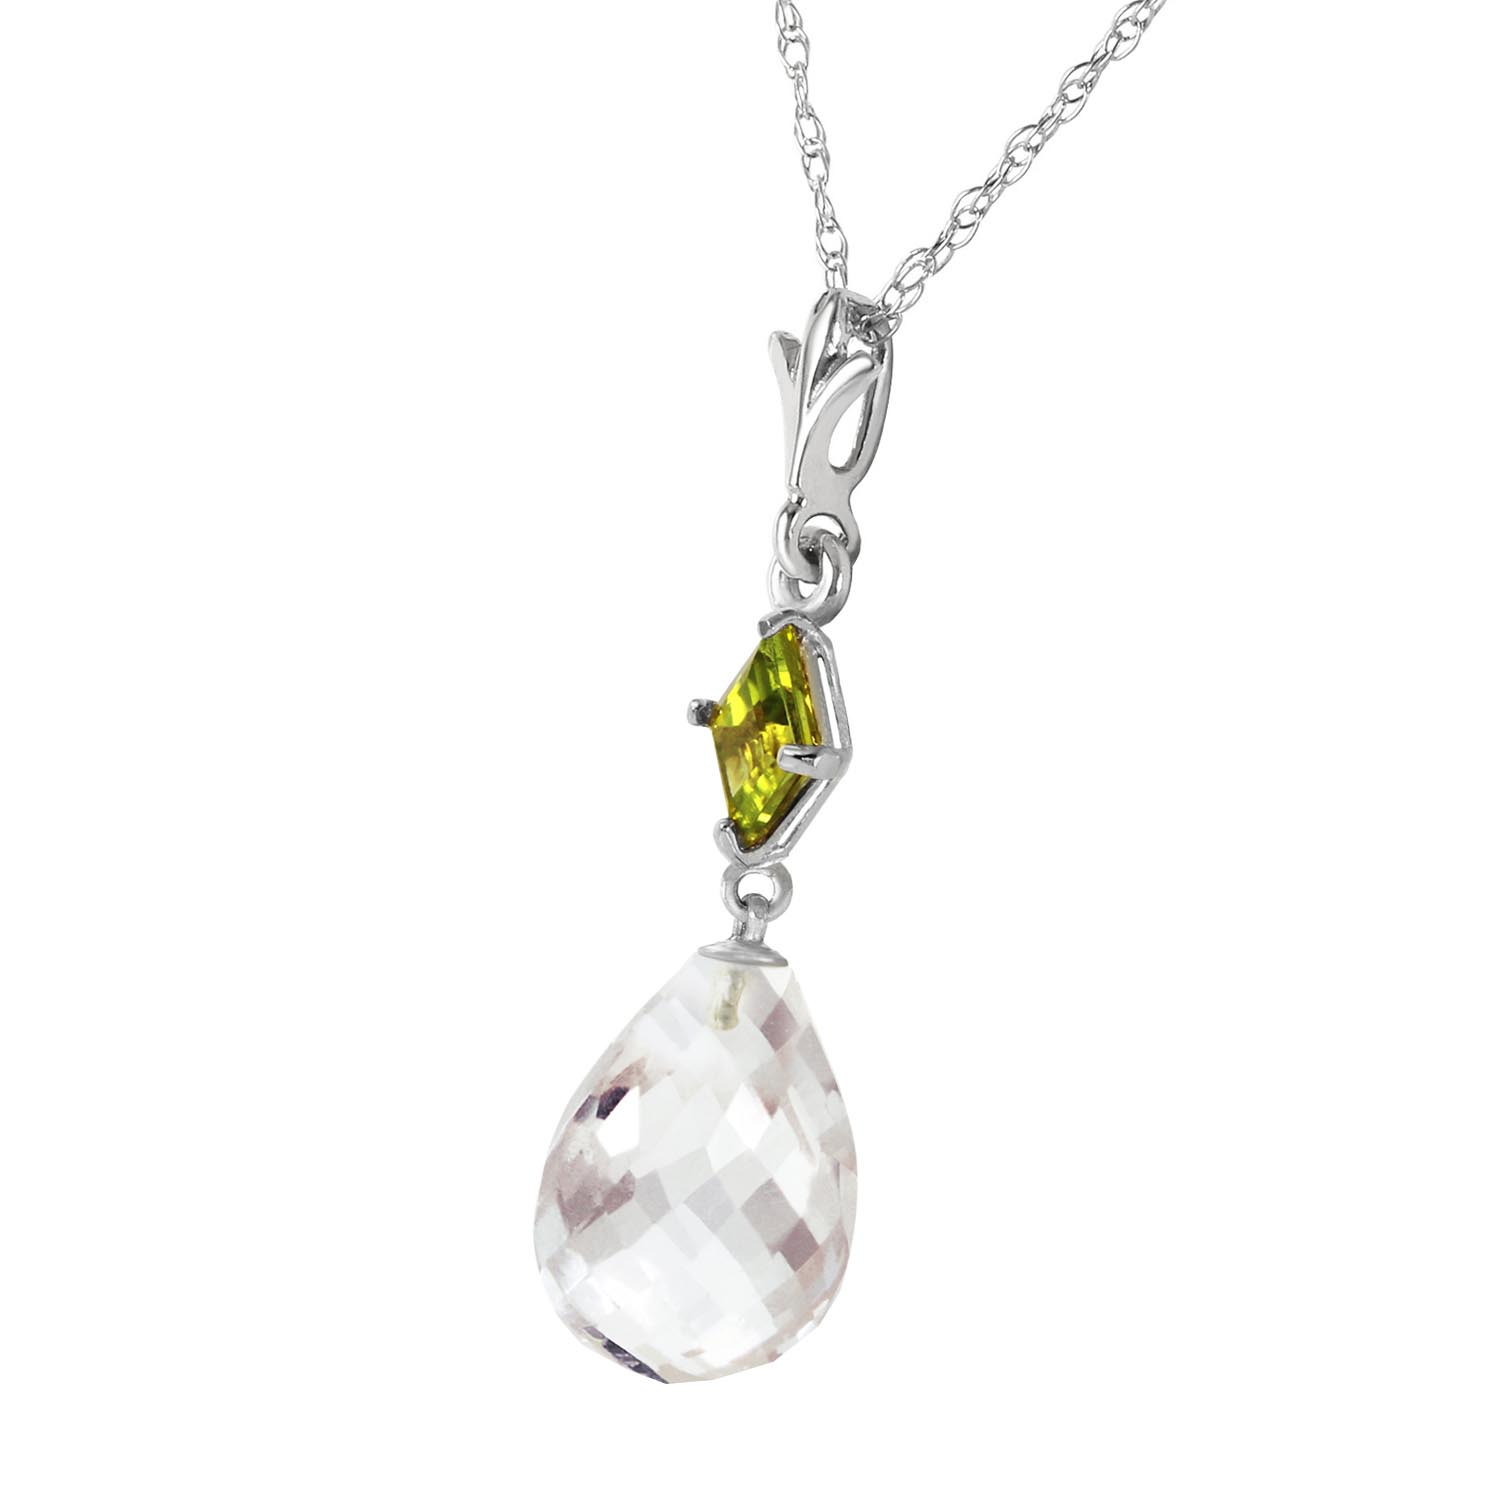 White Topaz and Peridot Pendant Necklace 5.5ctw in 14K White Gold